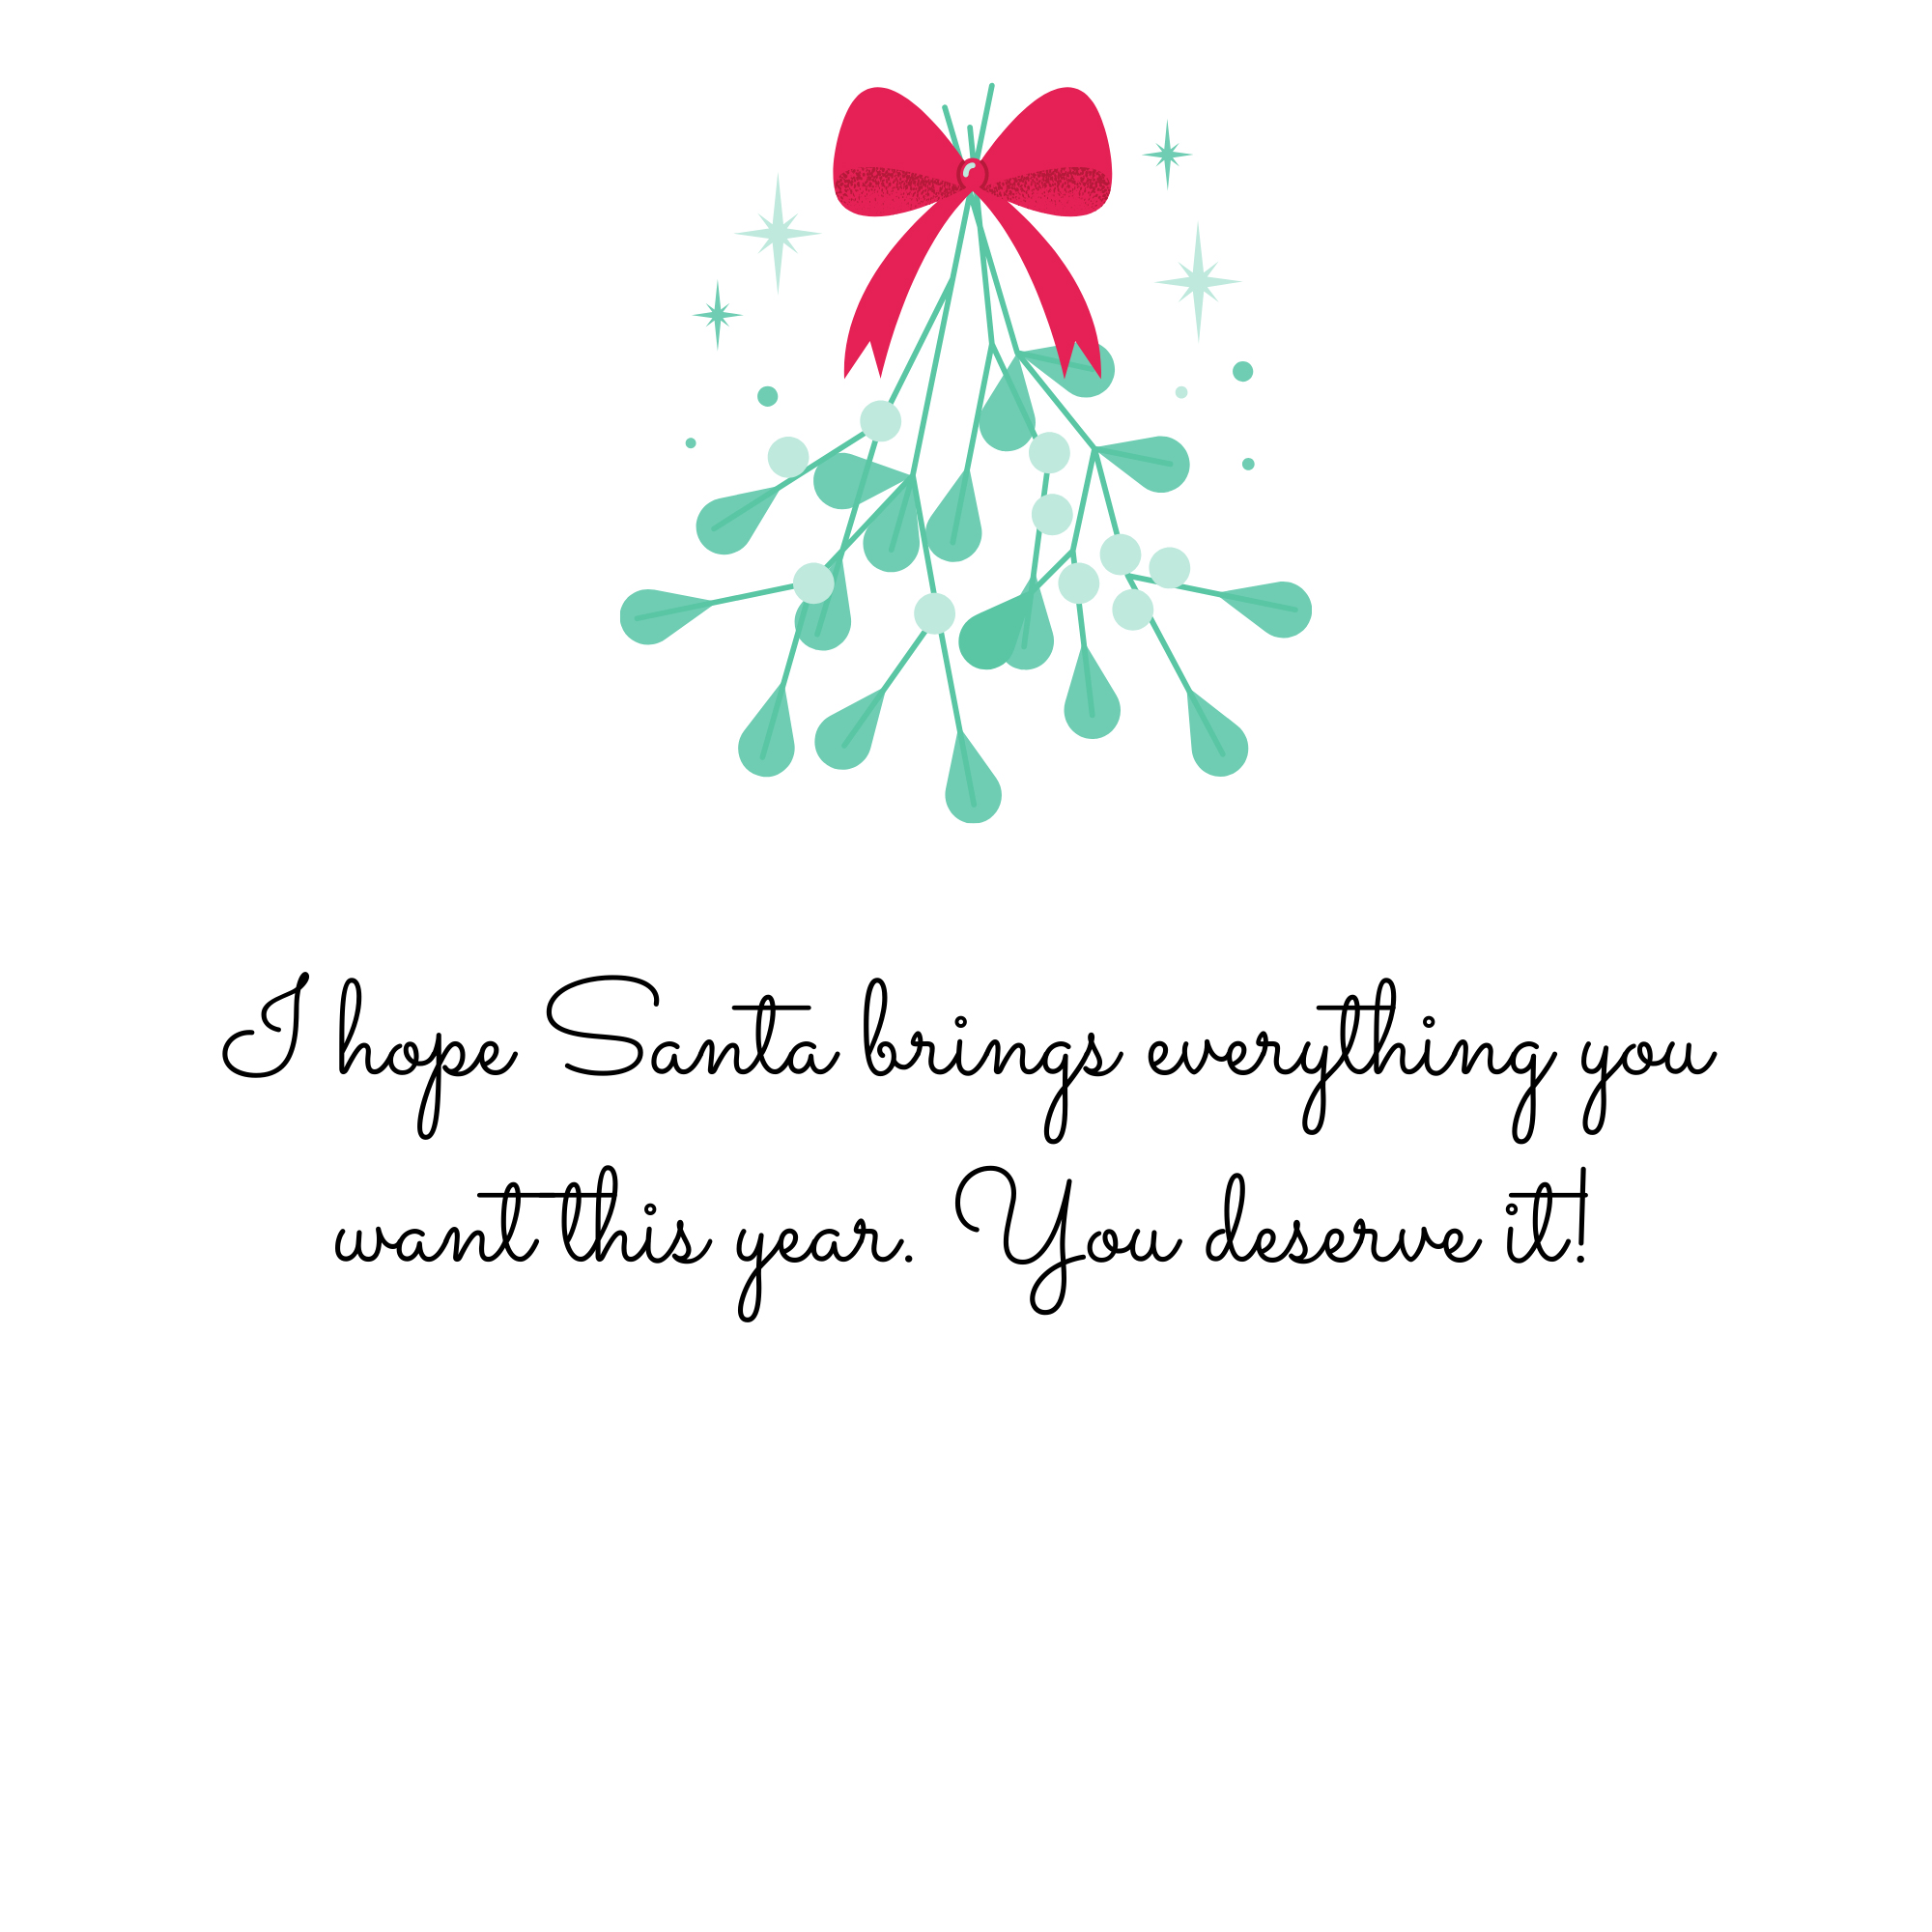 I hope Santa brings everything you want this year. You deserve it!